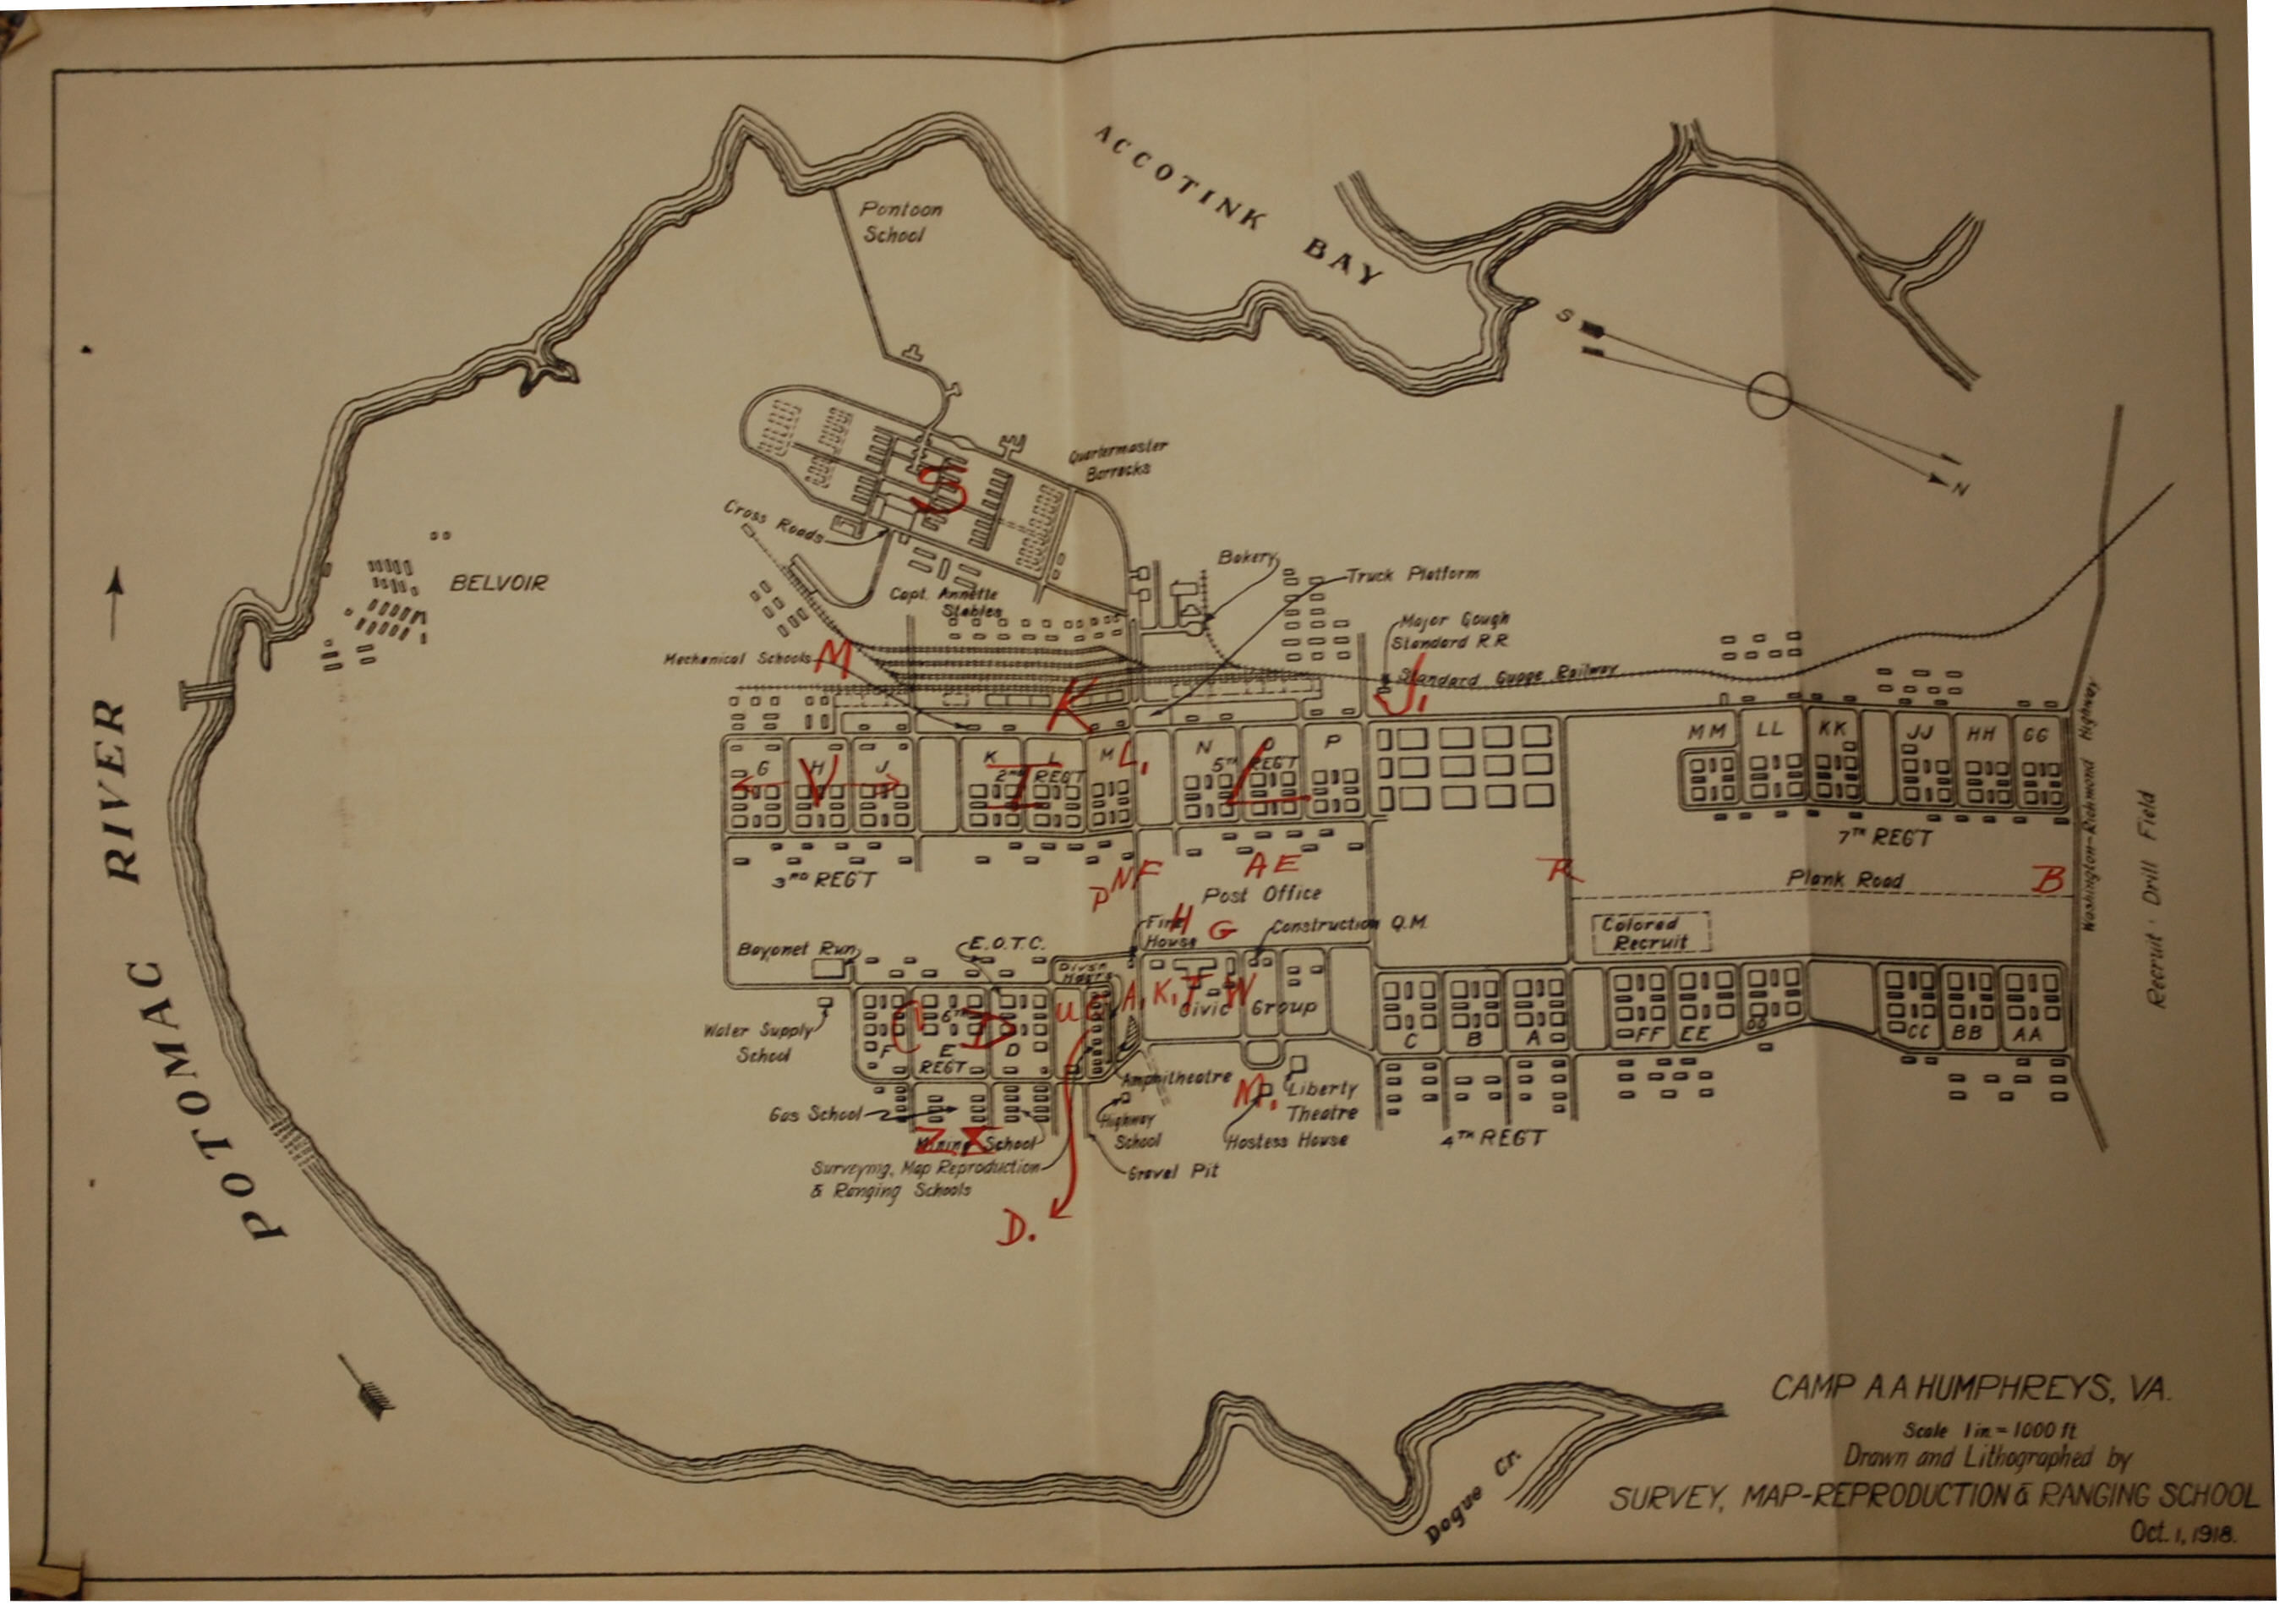 A 1918 Site map of Fort Belvoir whan it was named Camp Humphreys - Of note, it has a section just for colored recruits noted in dashed lines.